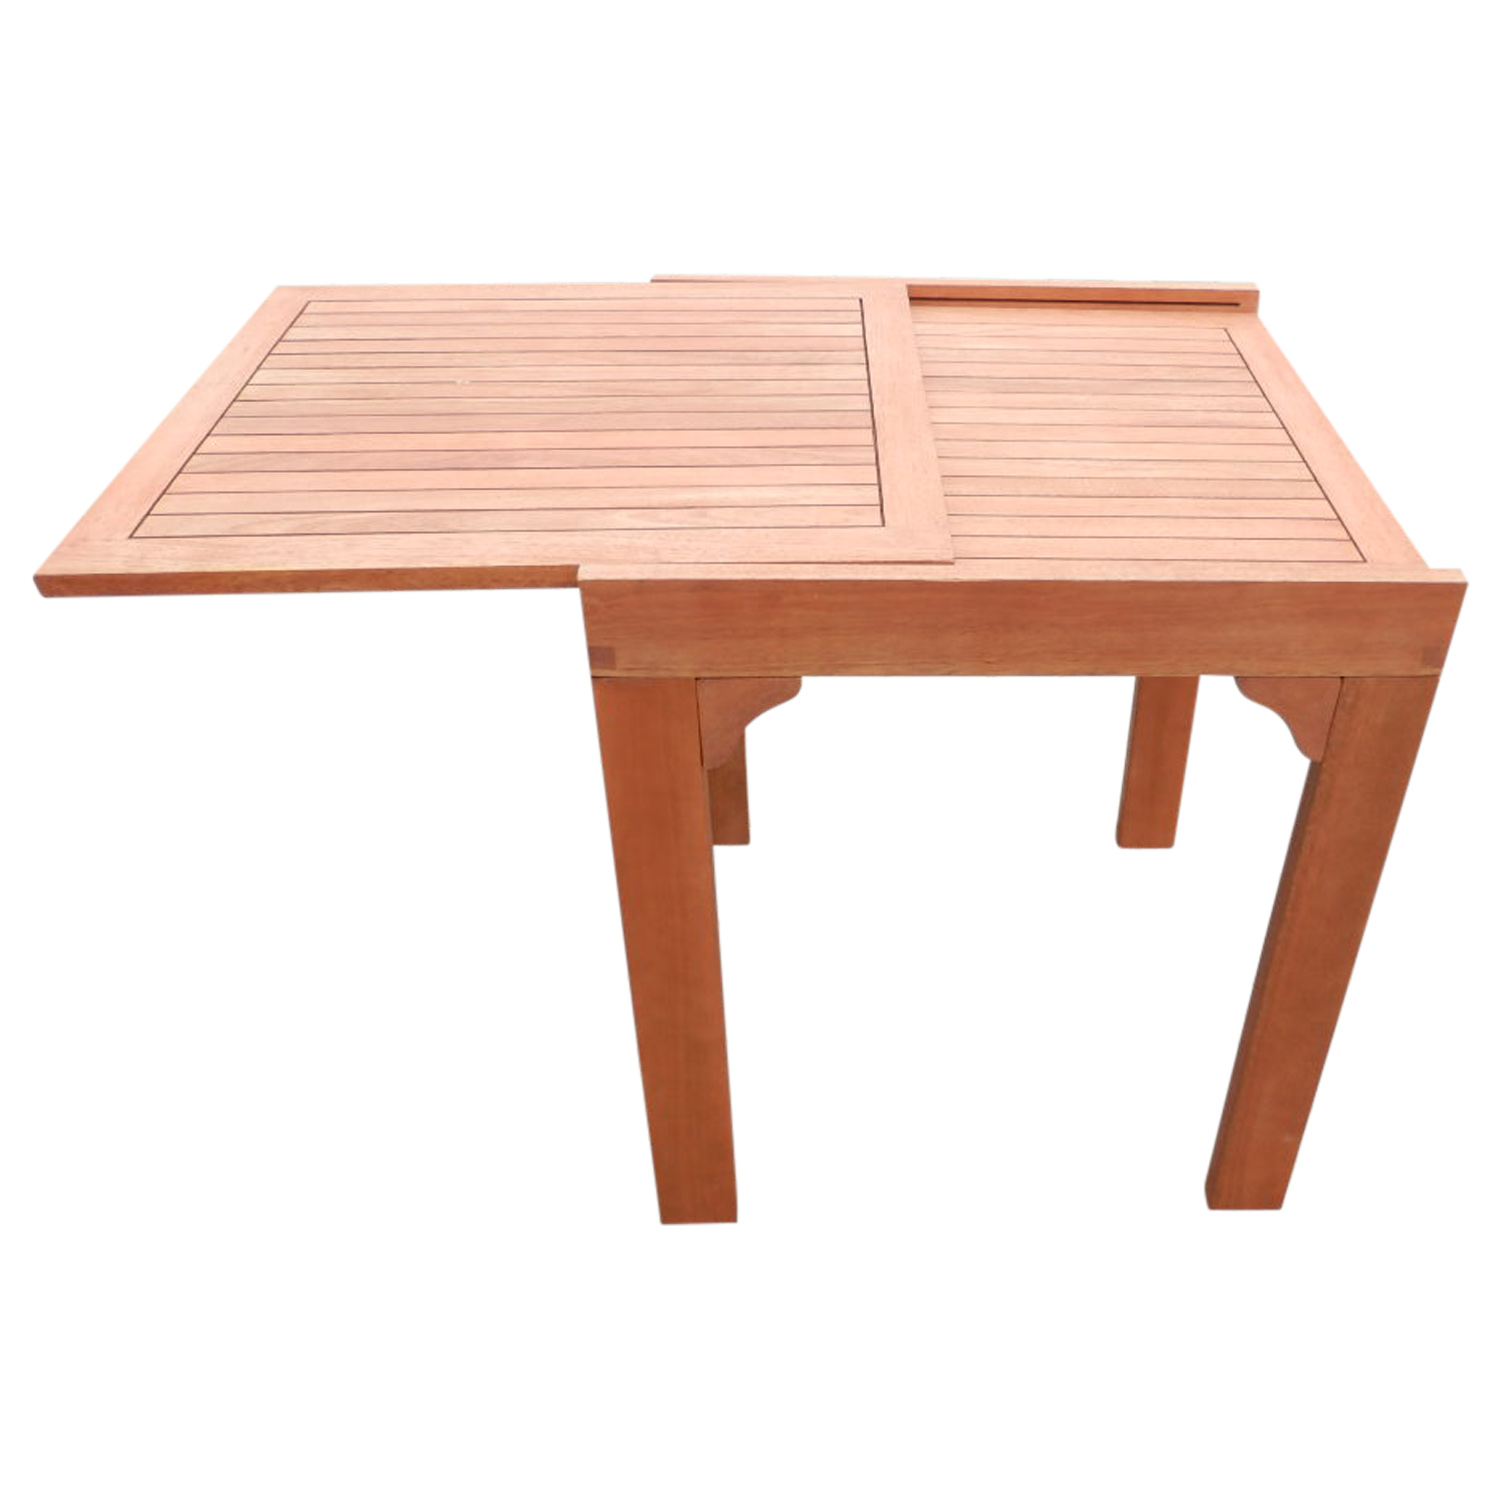 gartentisch ausziehtisch balkontisch gartenm bel tisch rio 65 130x70cm holz ebay. Black Bedroom Furniture Sets. Home Design Ideas